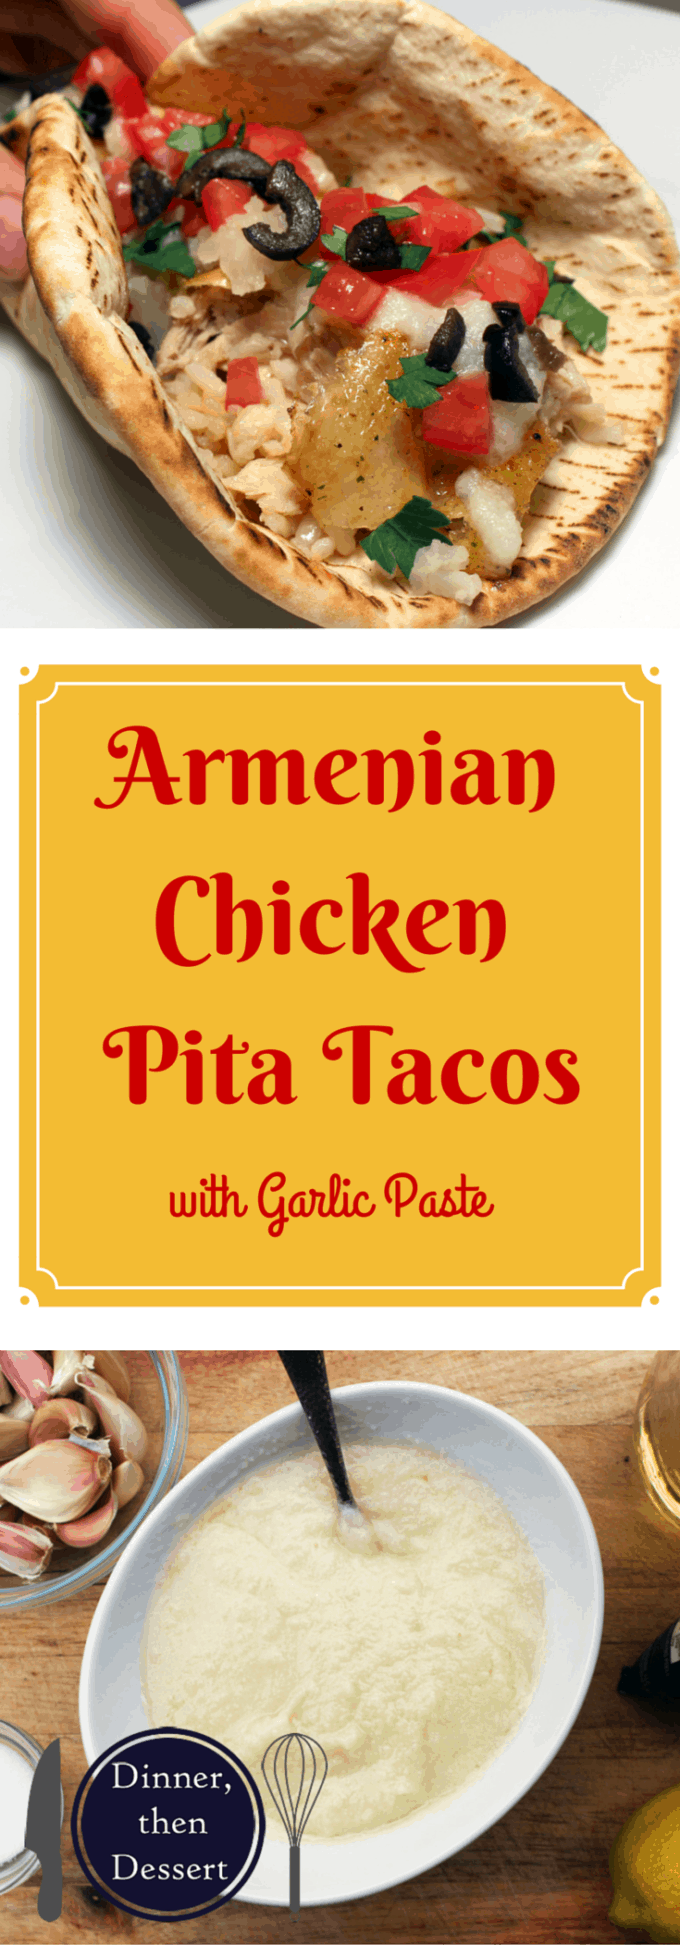 Armenian Garlic Rotisserie Chicken Pita Tacos are delicious crispy chicken in pita bread with garlic paste, lettuce, tomato and pickled veggies. Like a homemade gyro!